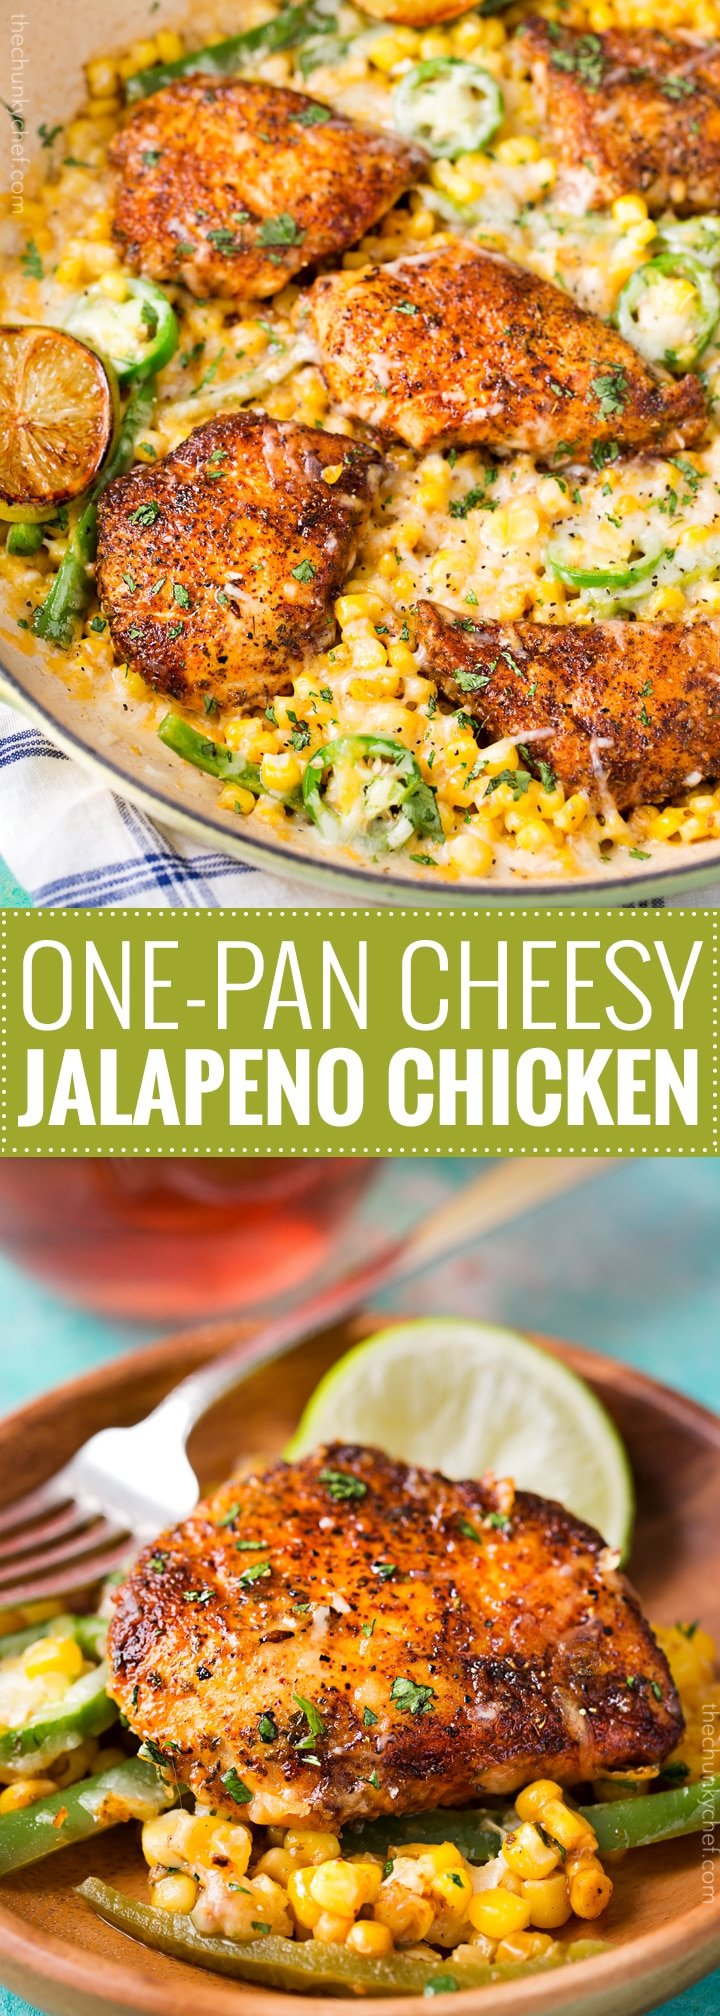 how to cook jalapenos in a pan